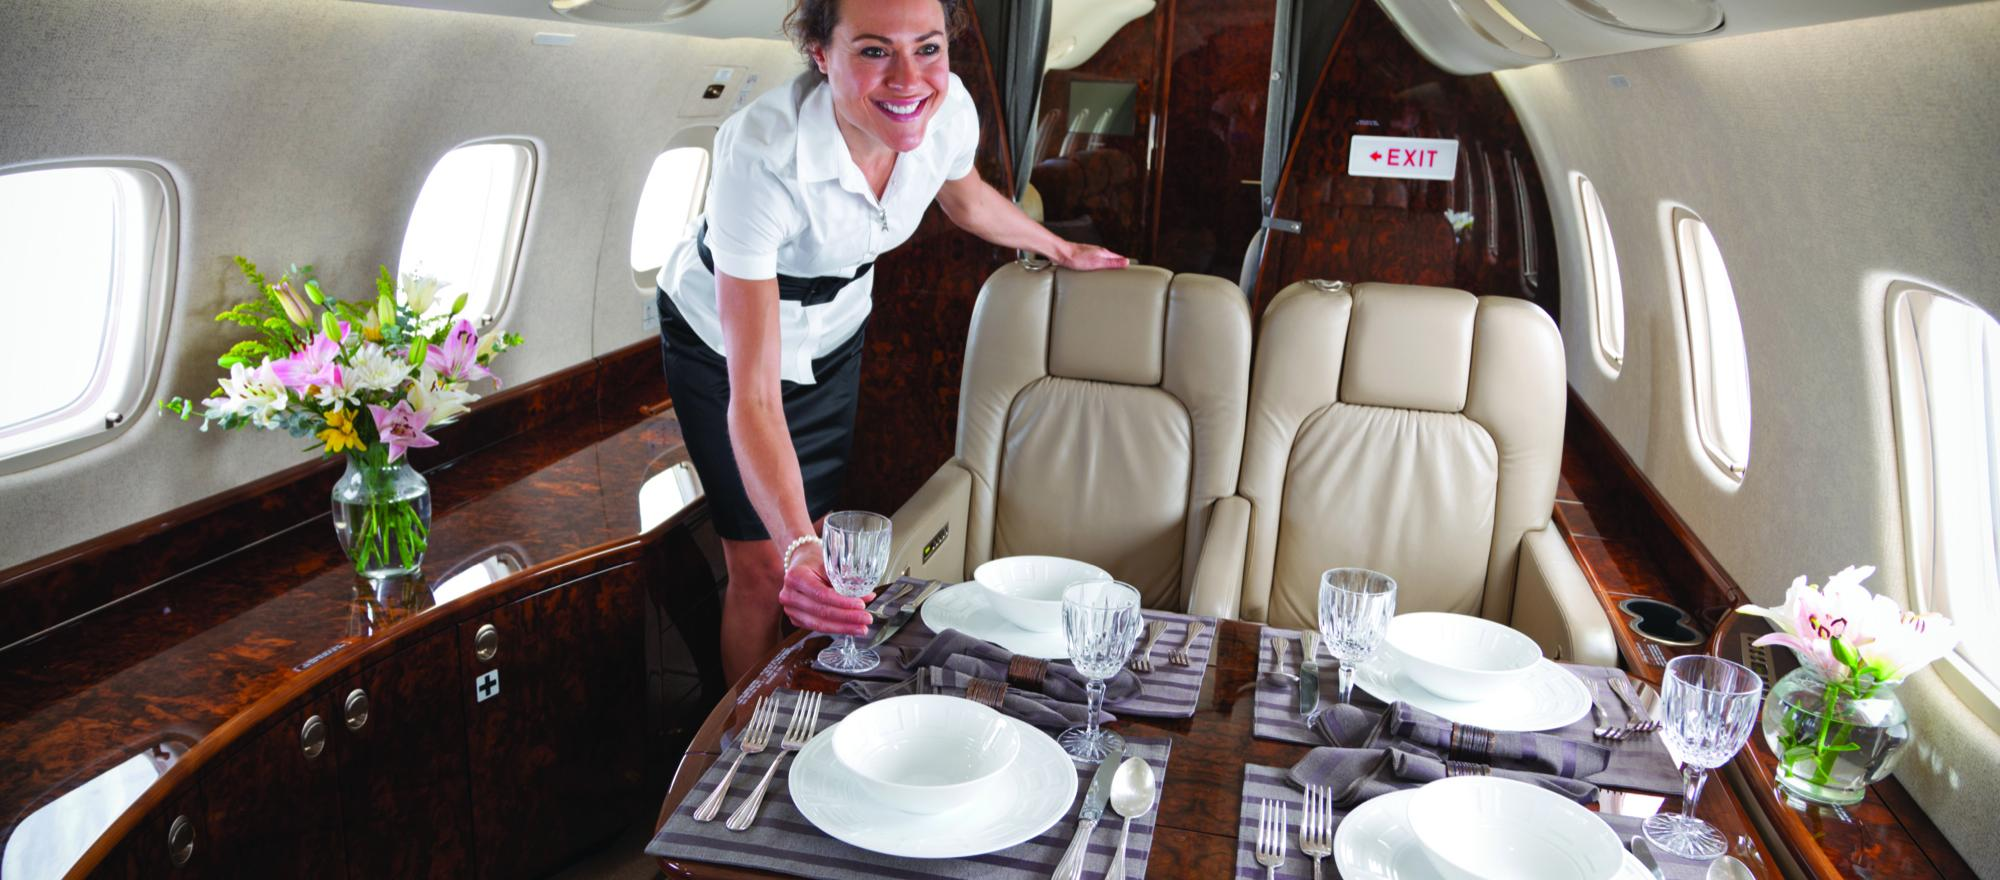 Flight attendants prepare and serve gourmet meals, help passengers navigate entertainment systems and provide life-saving help in an emergency. (Photo: TWC Aviation)